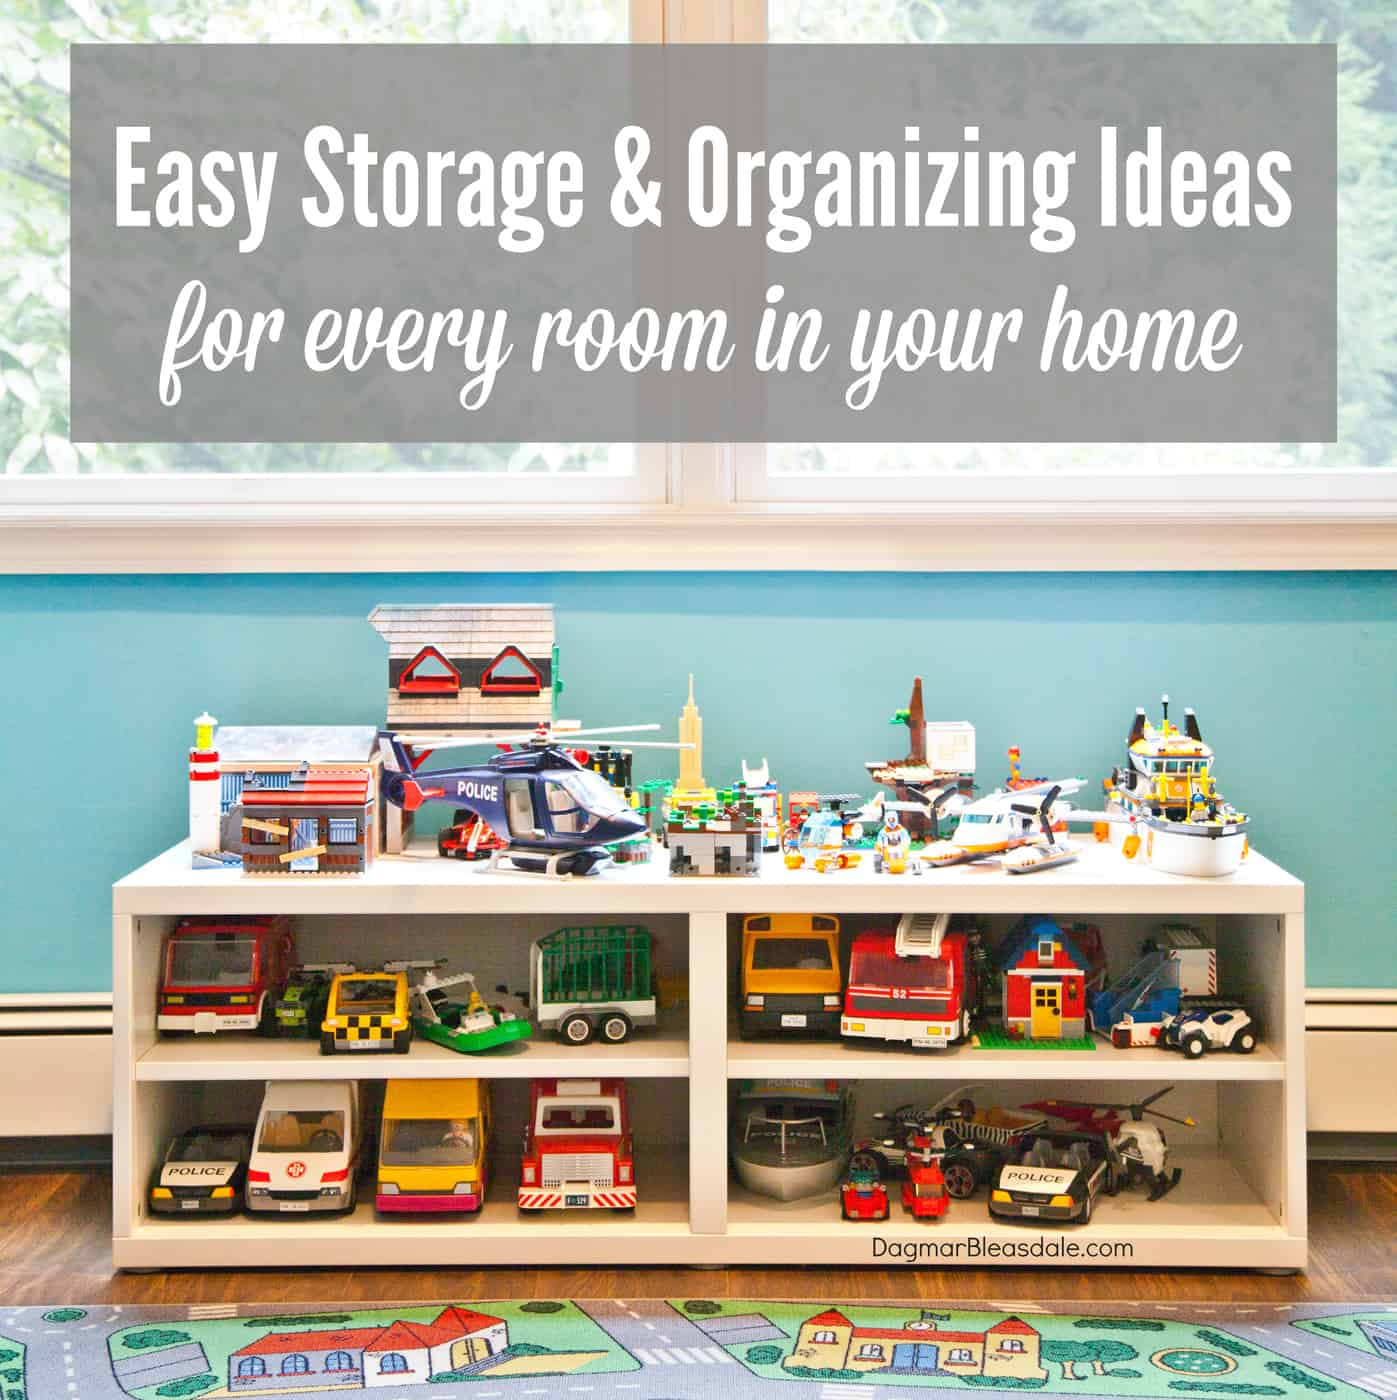 11 Easy Storage and Organizing Ideas for Every Room